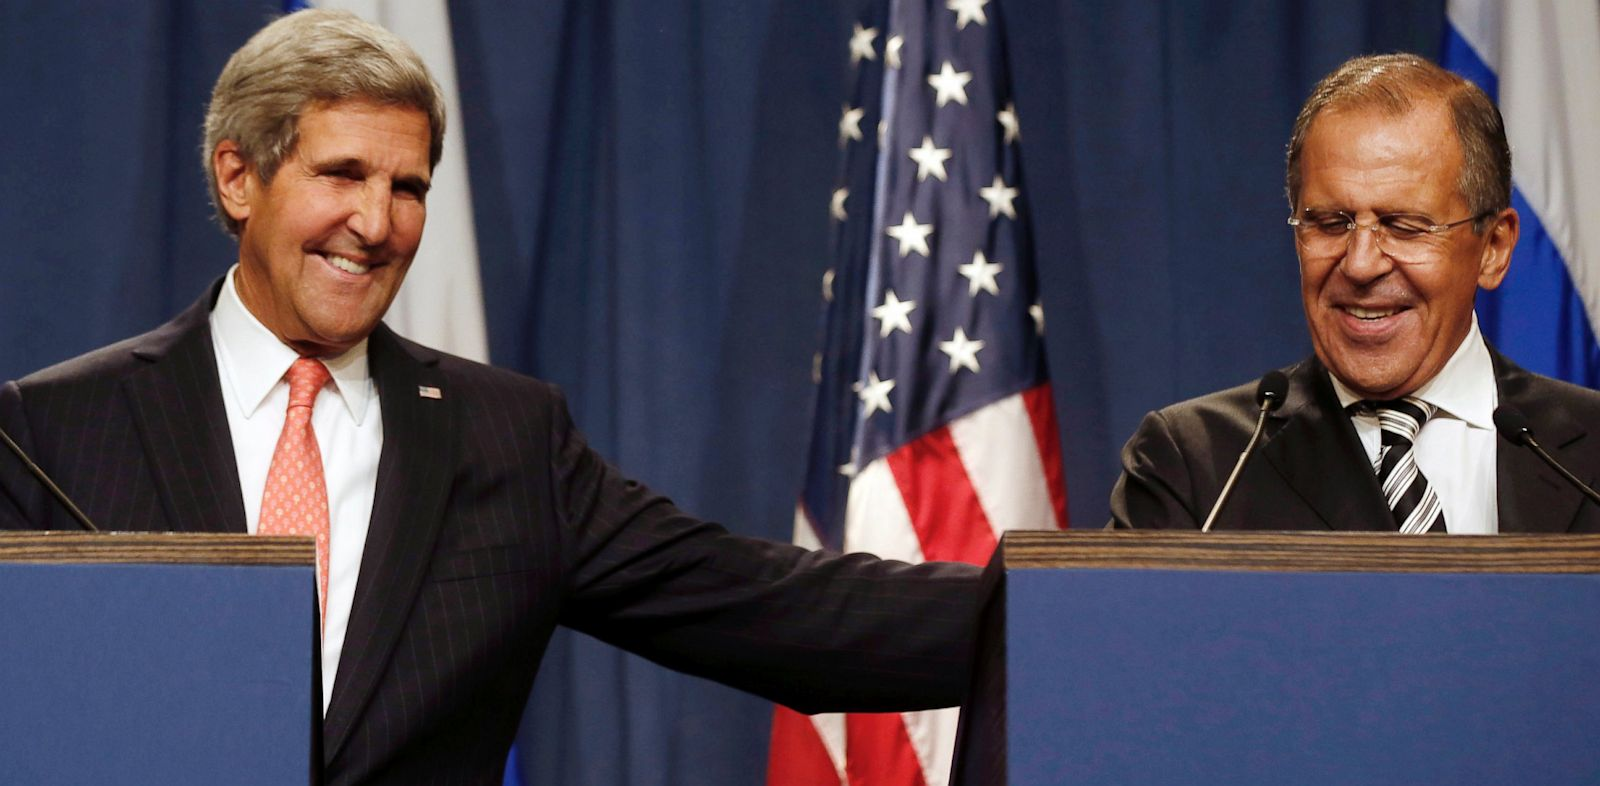 PHOTO: U.S. Secretary of State John Kerry, left, and Russian Foreign Minister Sergei Lavrov, make statements to the media following meetings regarding Syria, at a news conference in Geneva, Switzerland, Saturday Sept. 14, 2013.